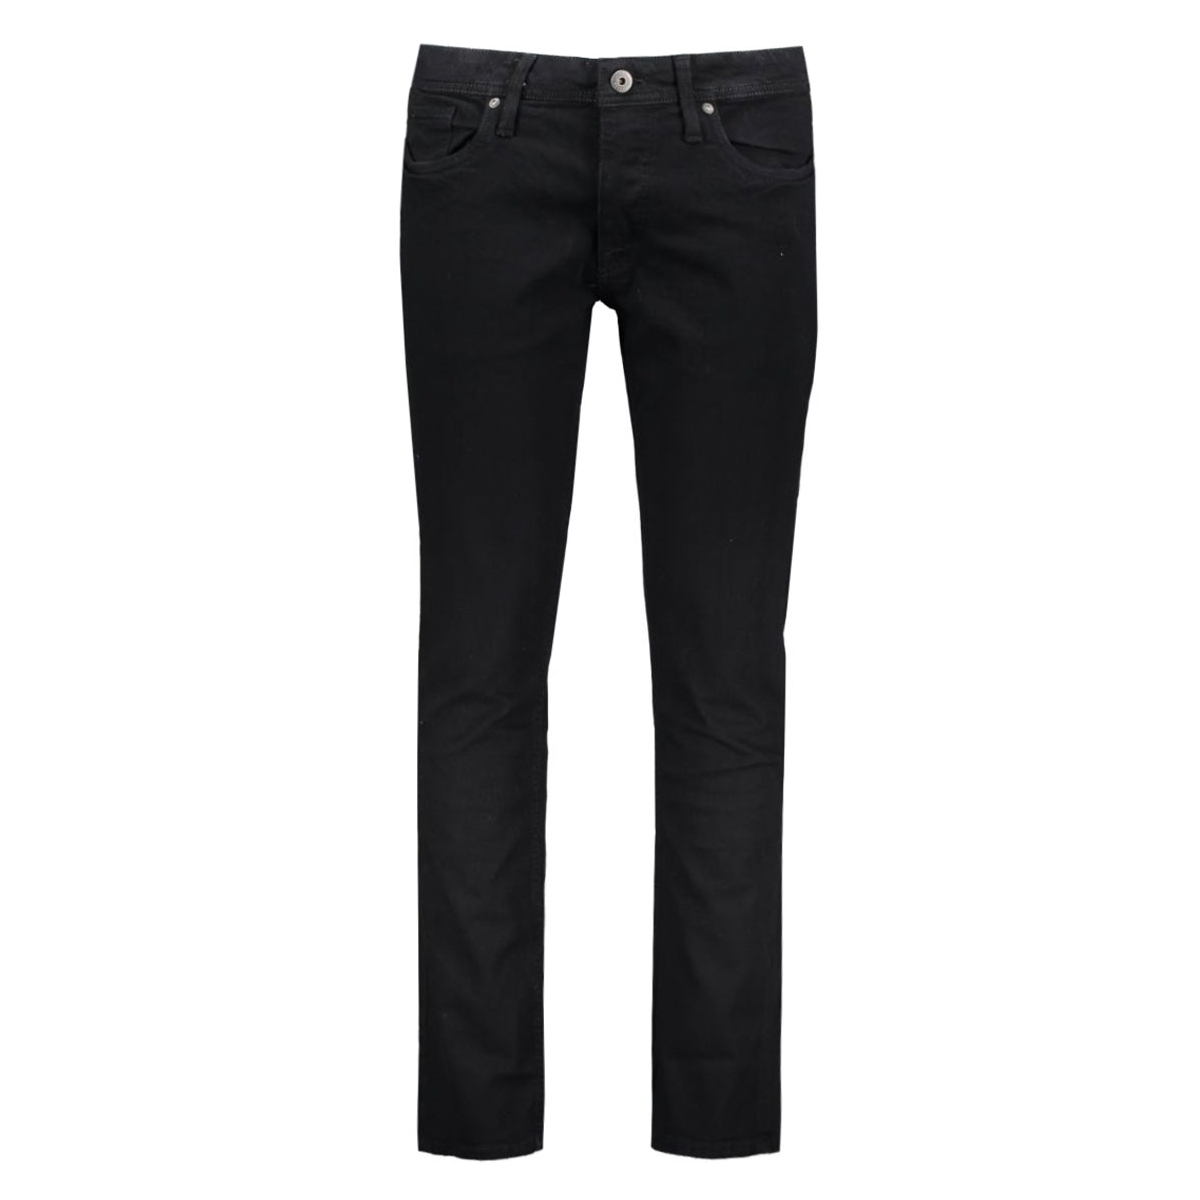 jjitim jjoriginal sc 298 lid 12116952 jack & jones jeans black denim